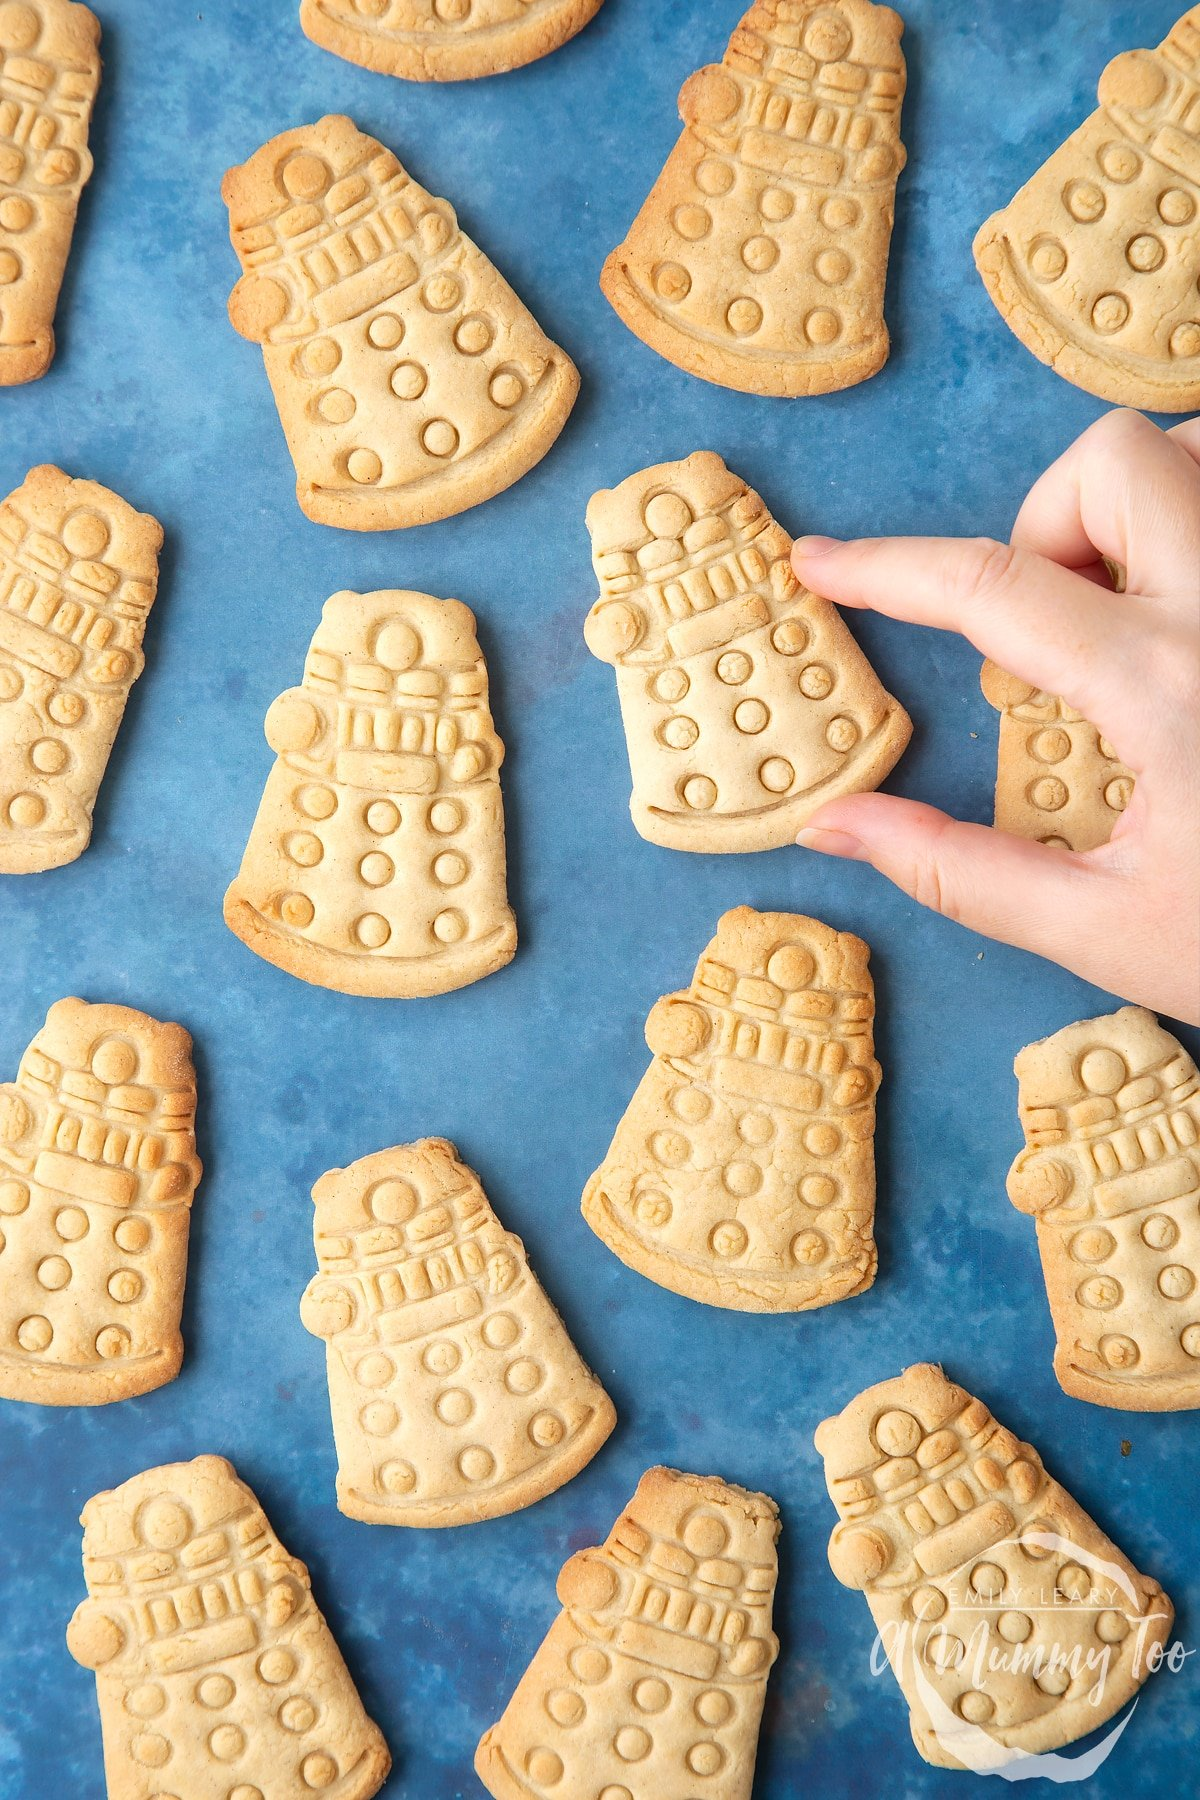 Dalek cookies on a blue background. The cookies are undecorated. A hand reaches to take one.